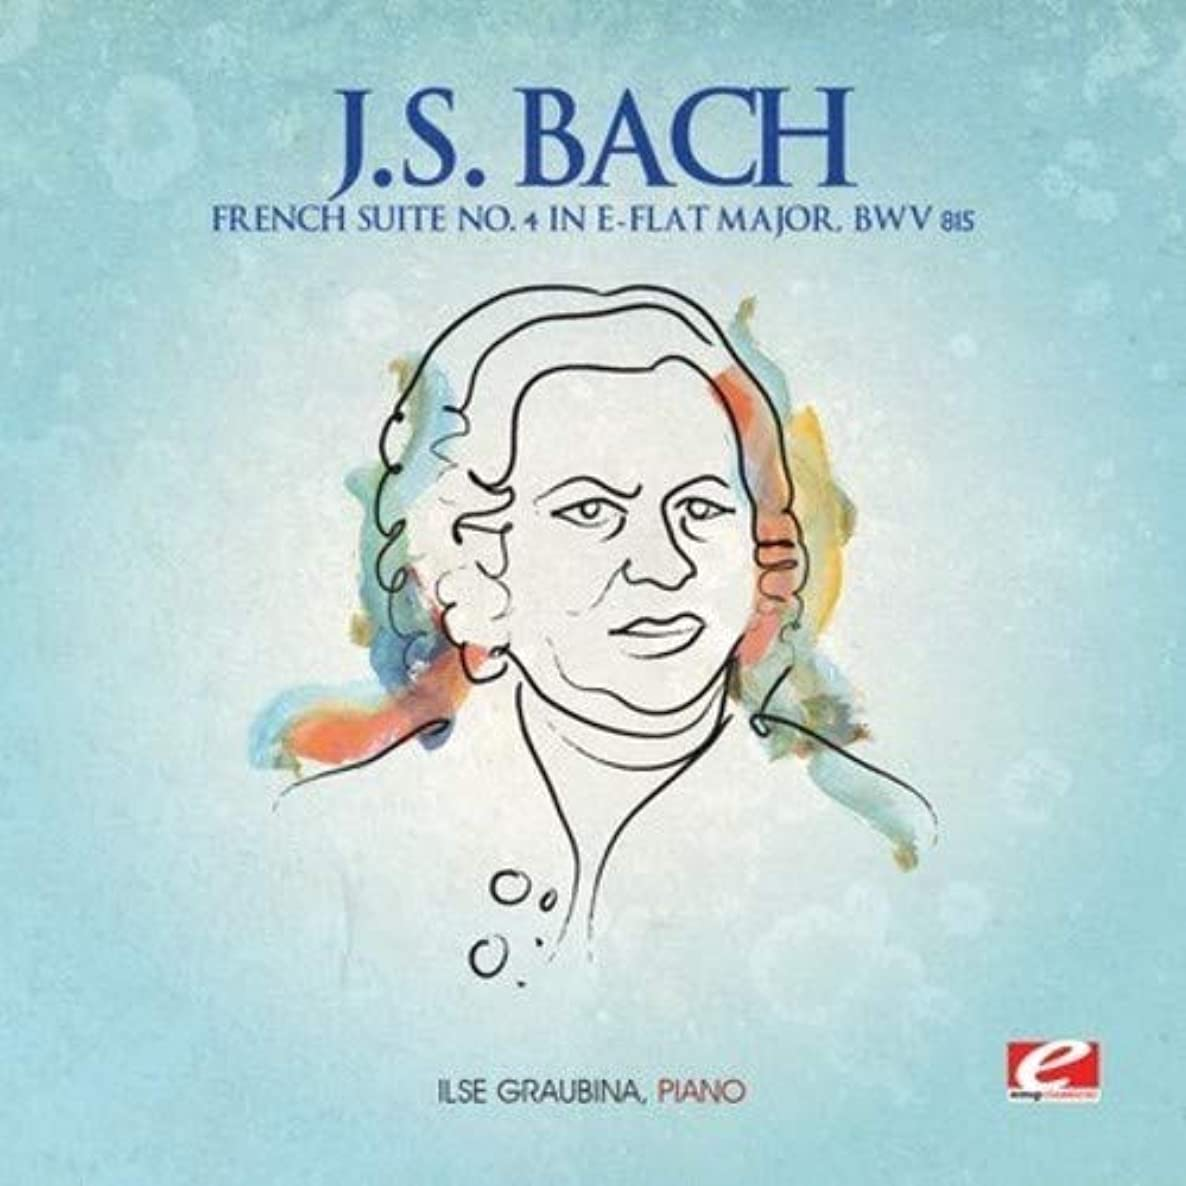 J.S. Bach: French Suite No. 4 in E-Flat Major, BWV 815